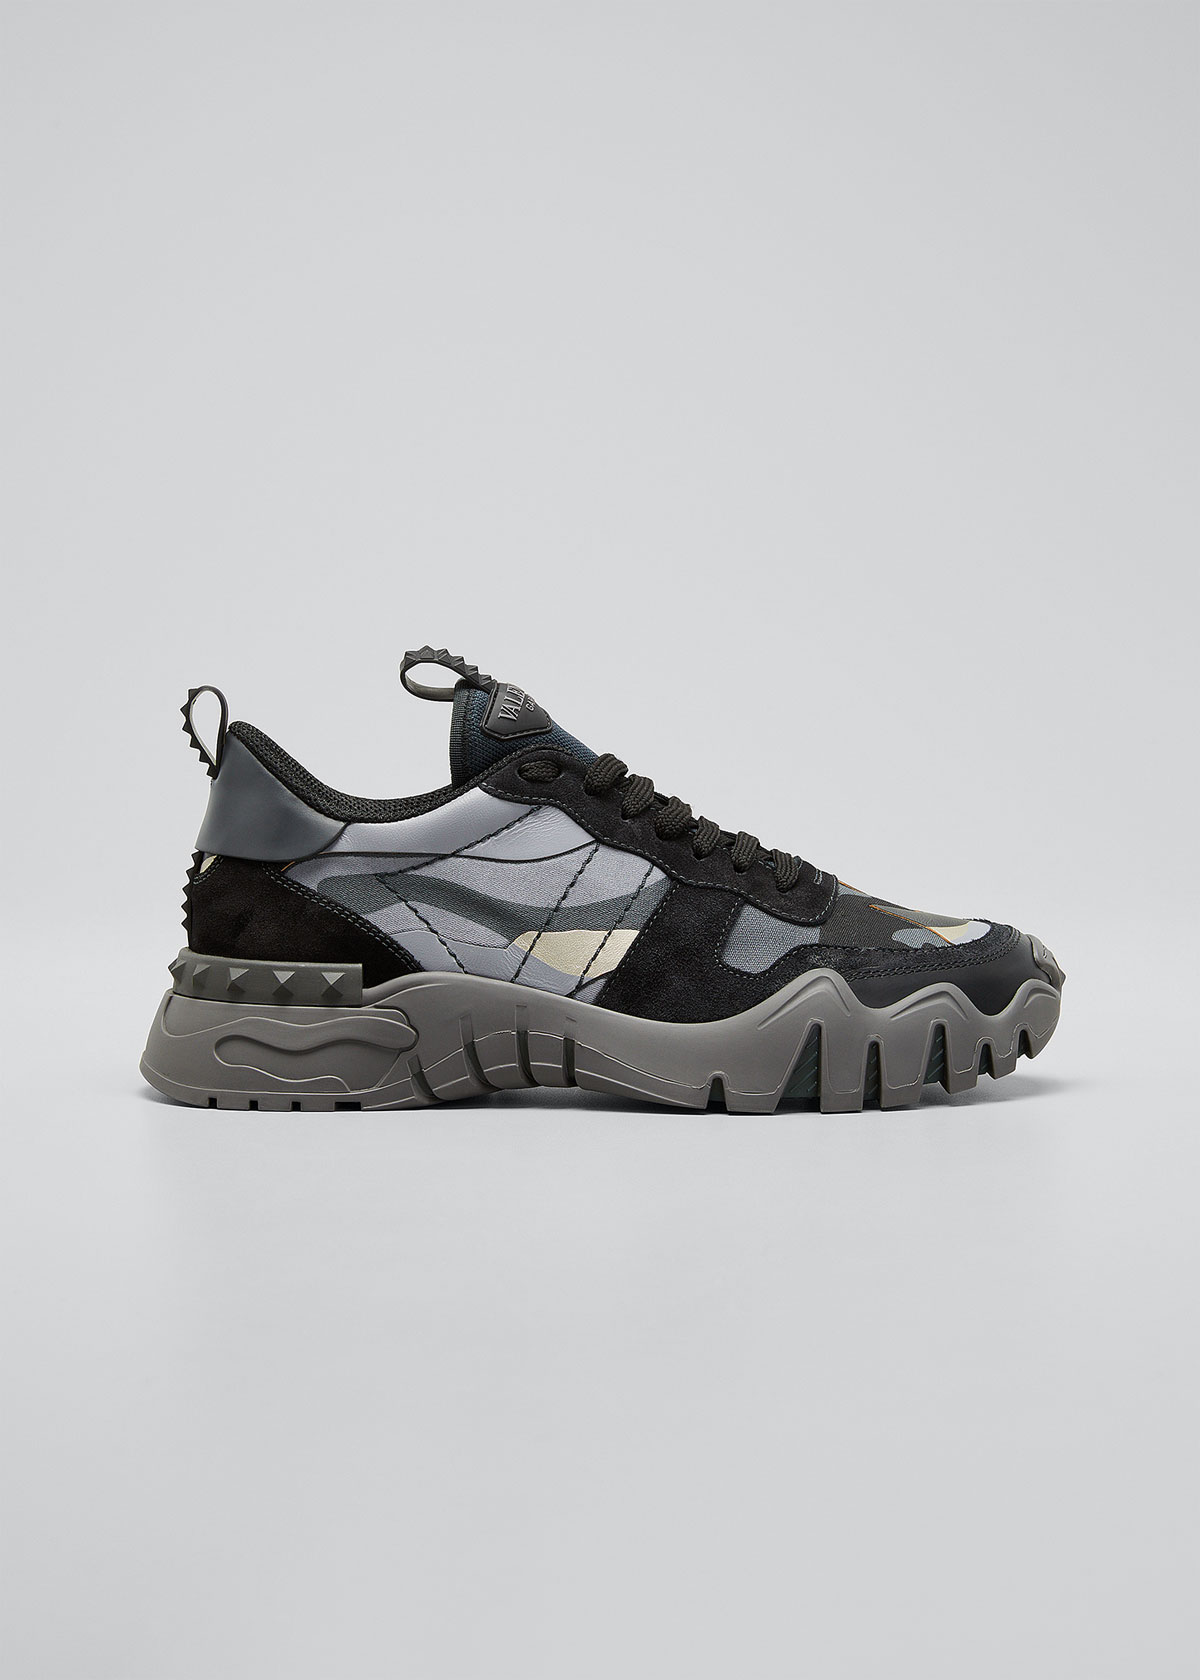 Valentino MEN'S ROCK STUD CAMO-PRINT RUNNER SNEAKERS